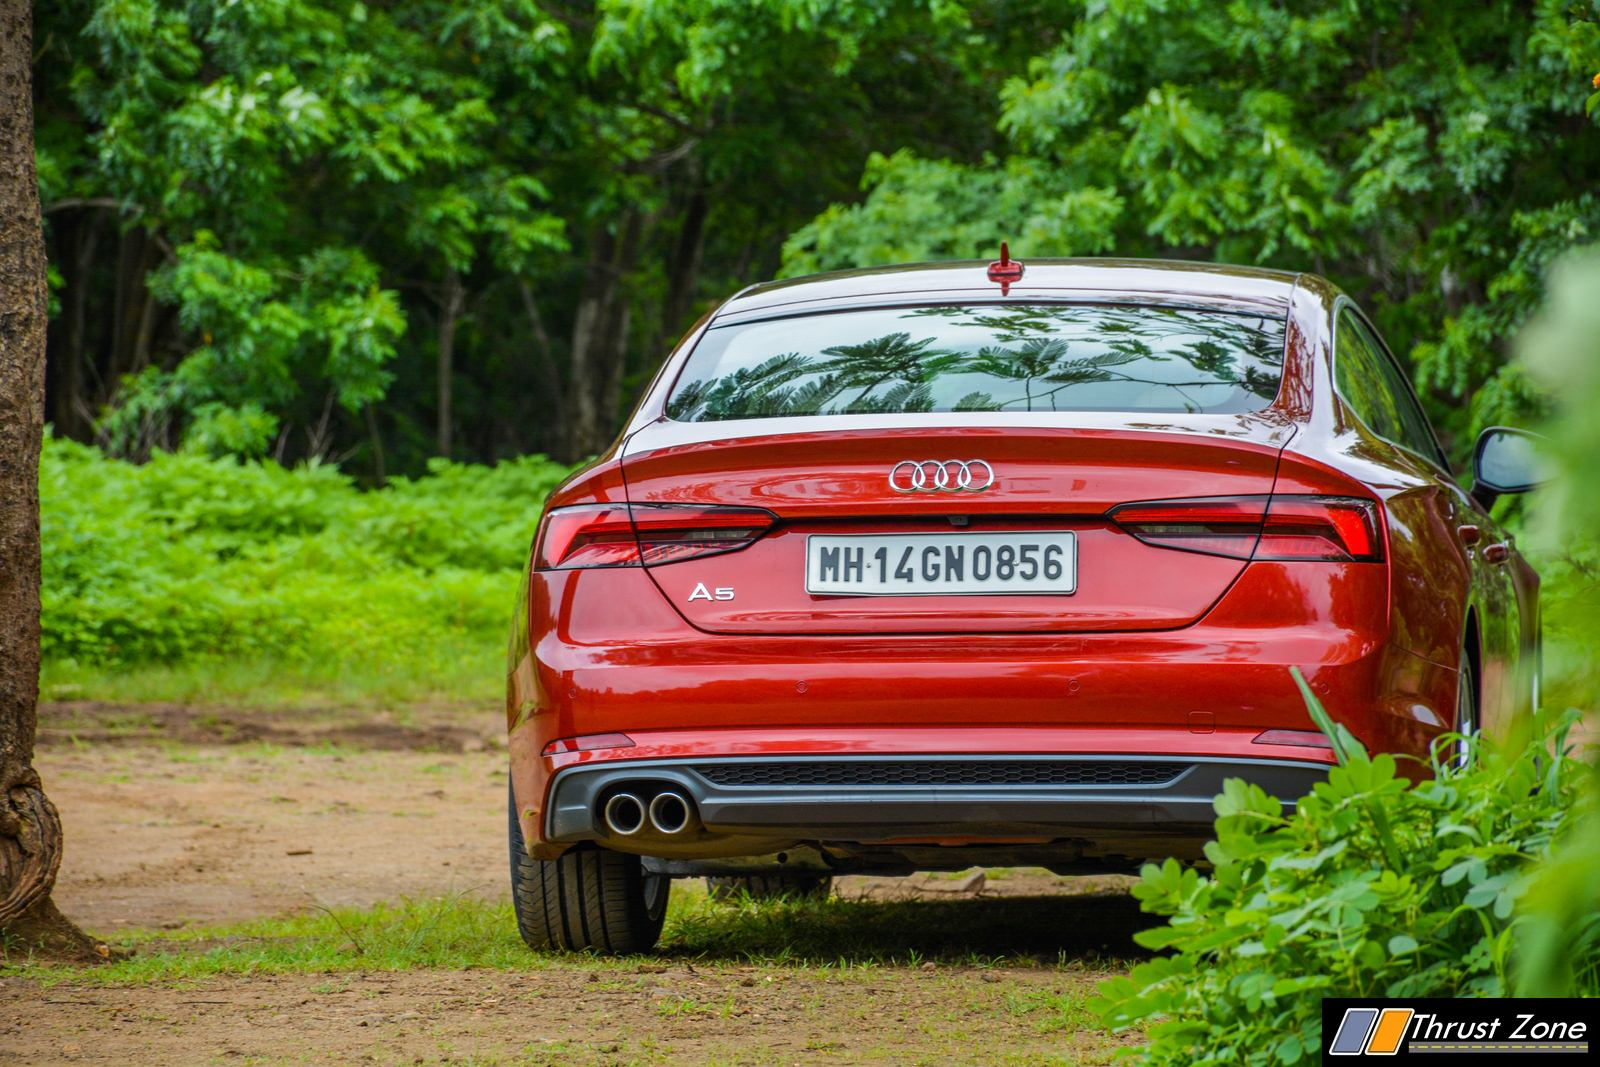 https://www.thrustzone.com/wp-content/uploads/2018/08/2018-Audi-A5-Diesel-India-Review-16.jpg